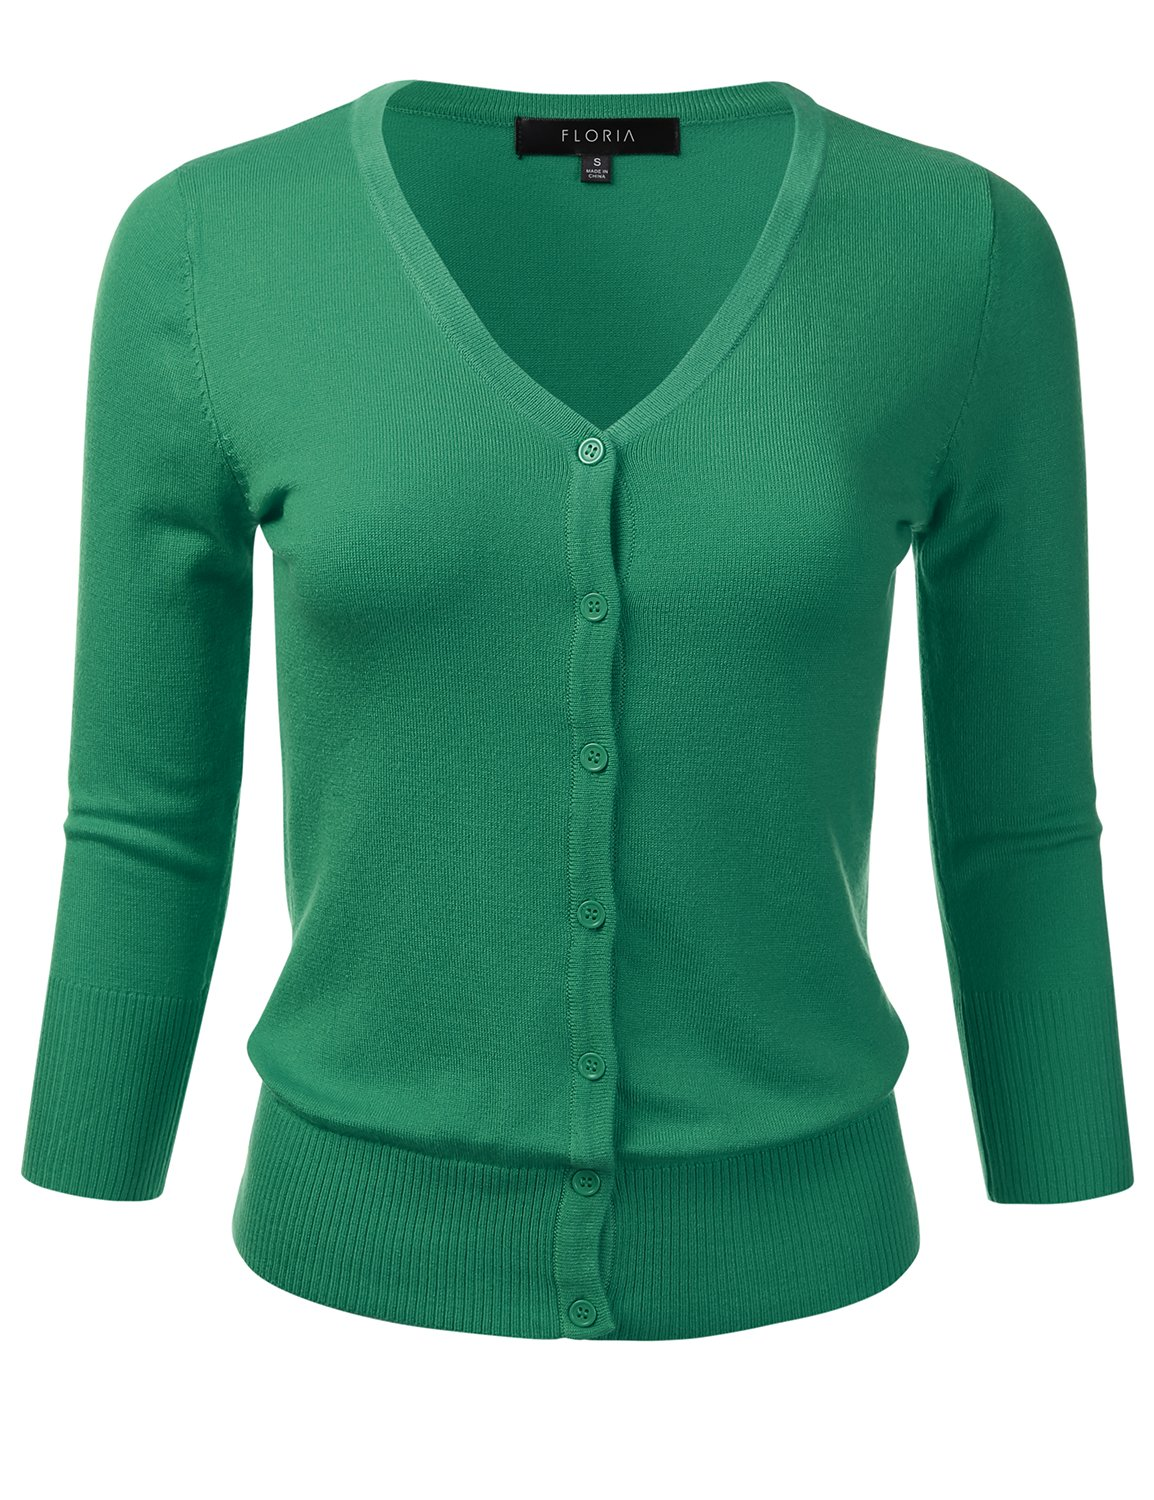 FLORIA Womens Button Down 3/4 Sleeve V-Neck Stretch Knit Cardigan Sweater KellyGreen L